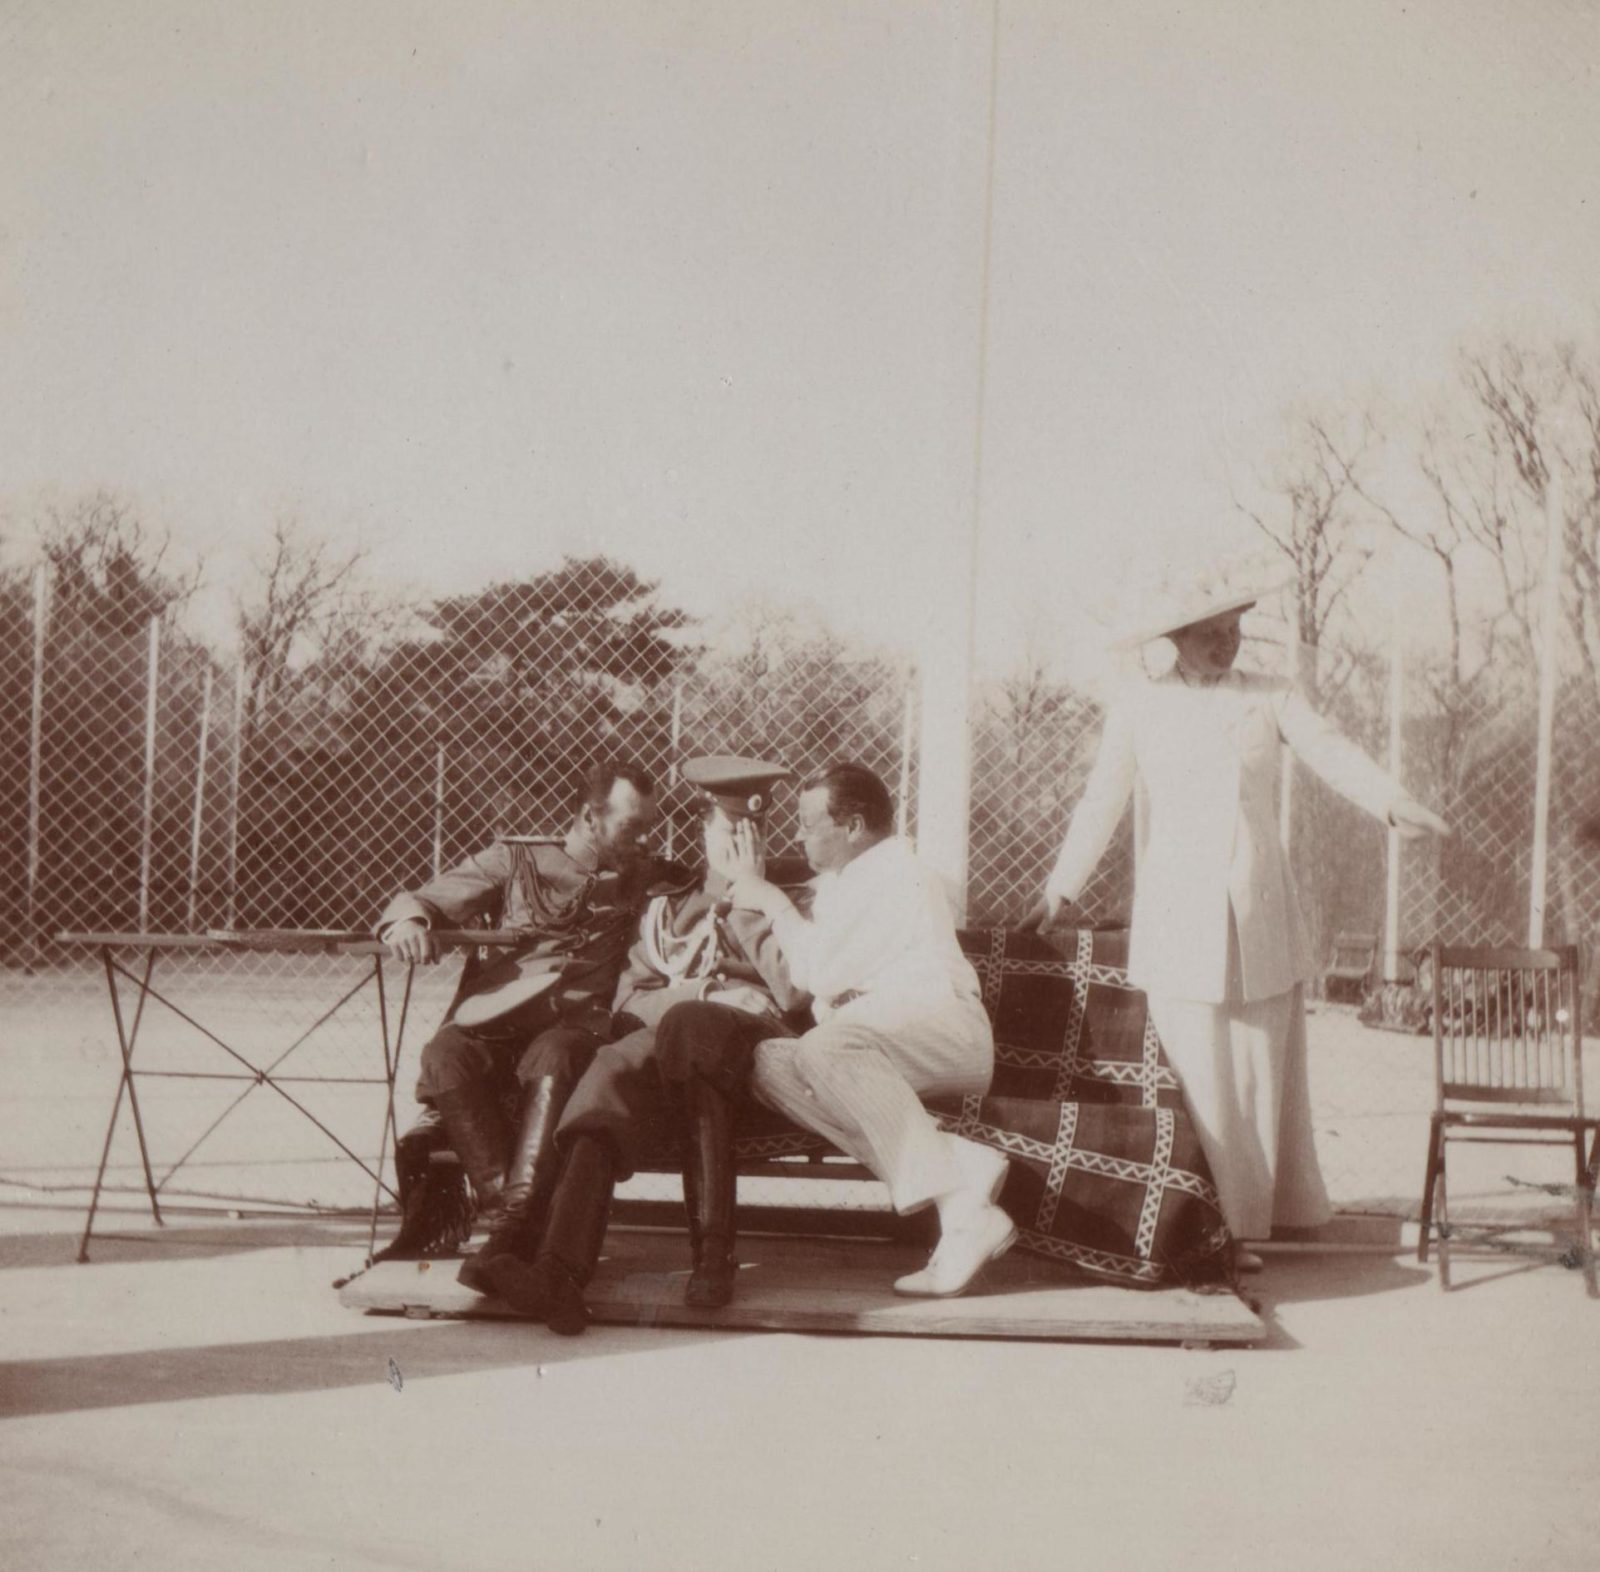 His Imperial Majesty the Emperor Nicholas Alexandrovich (Nicholas II) (left) at the tennis court.